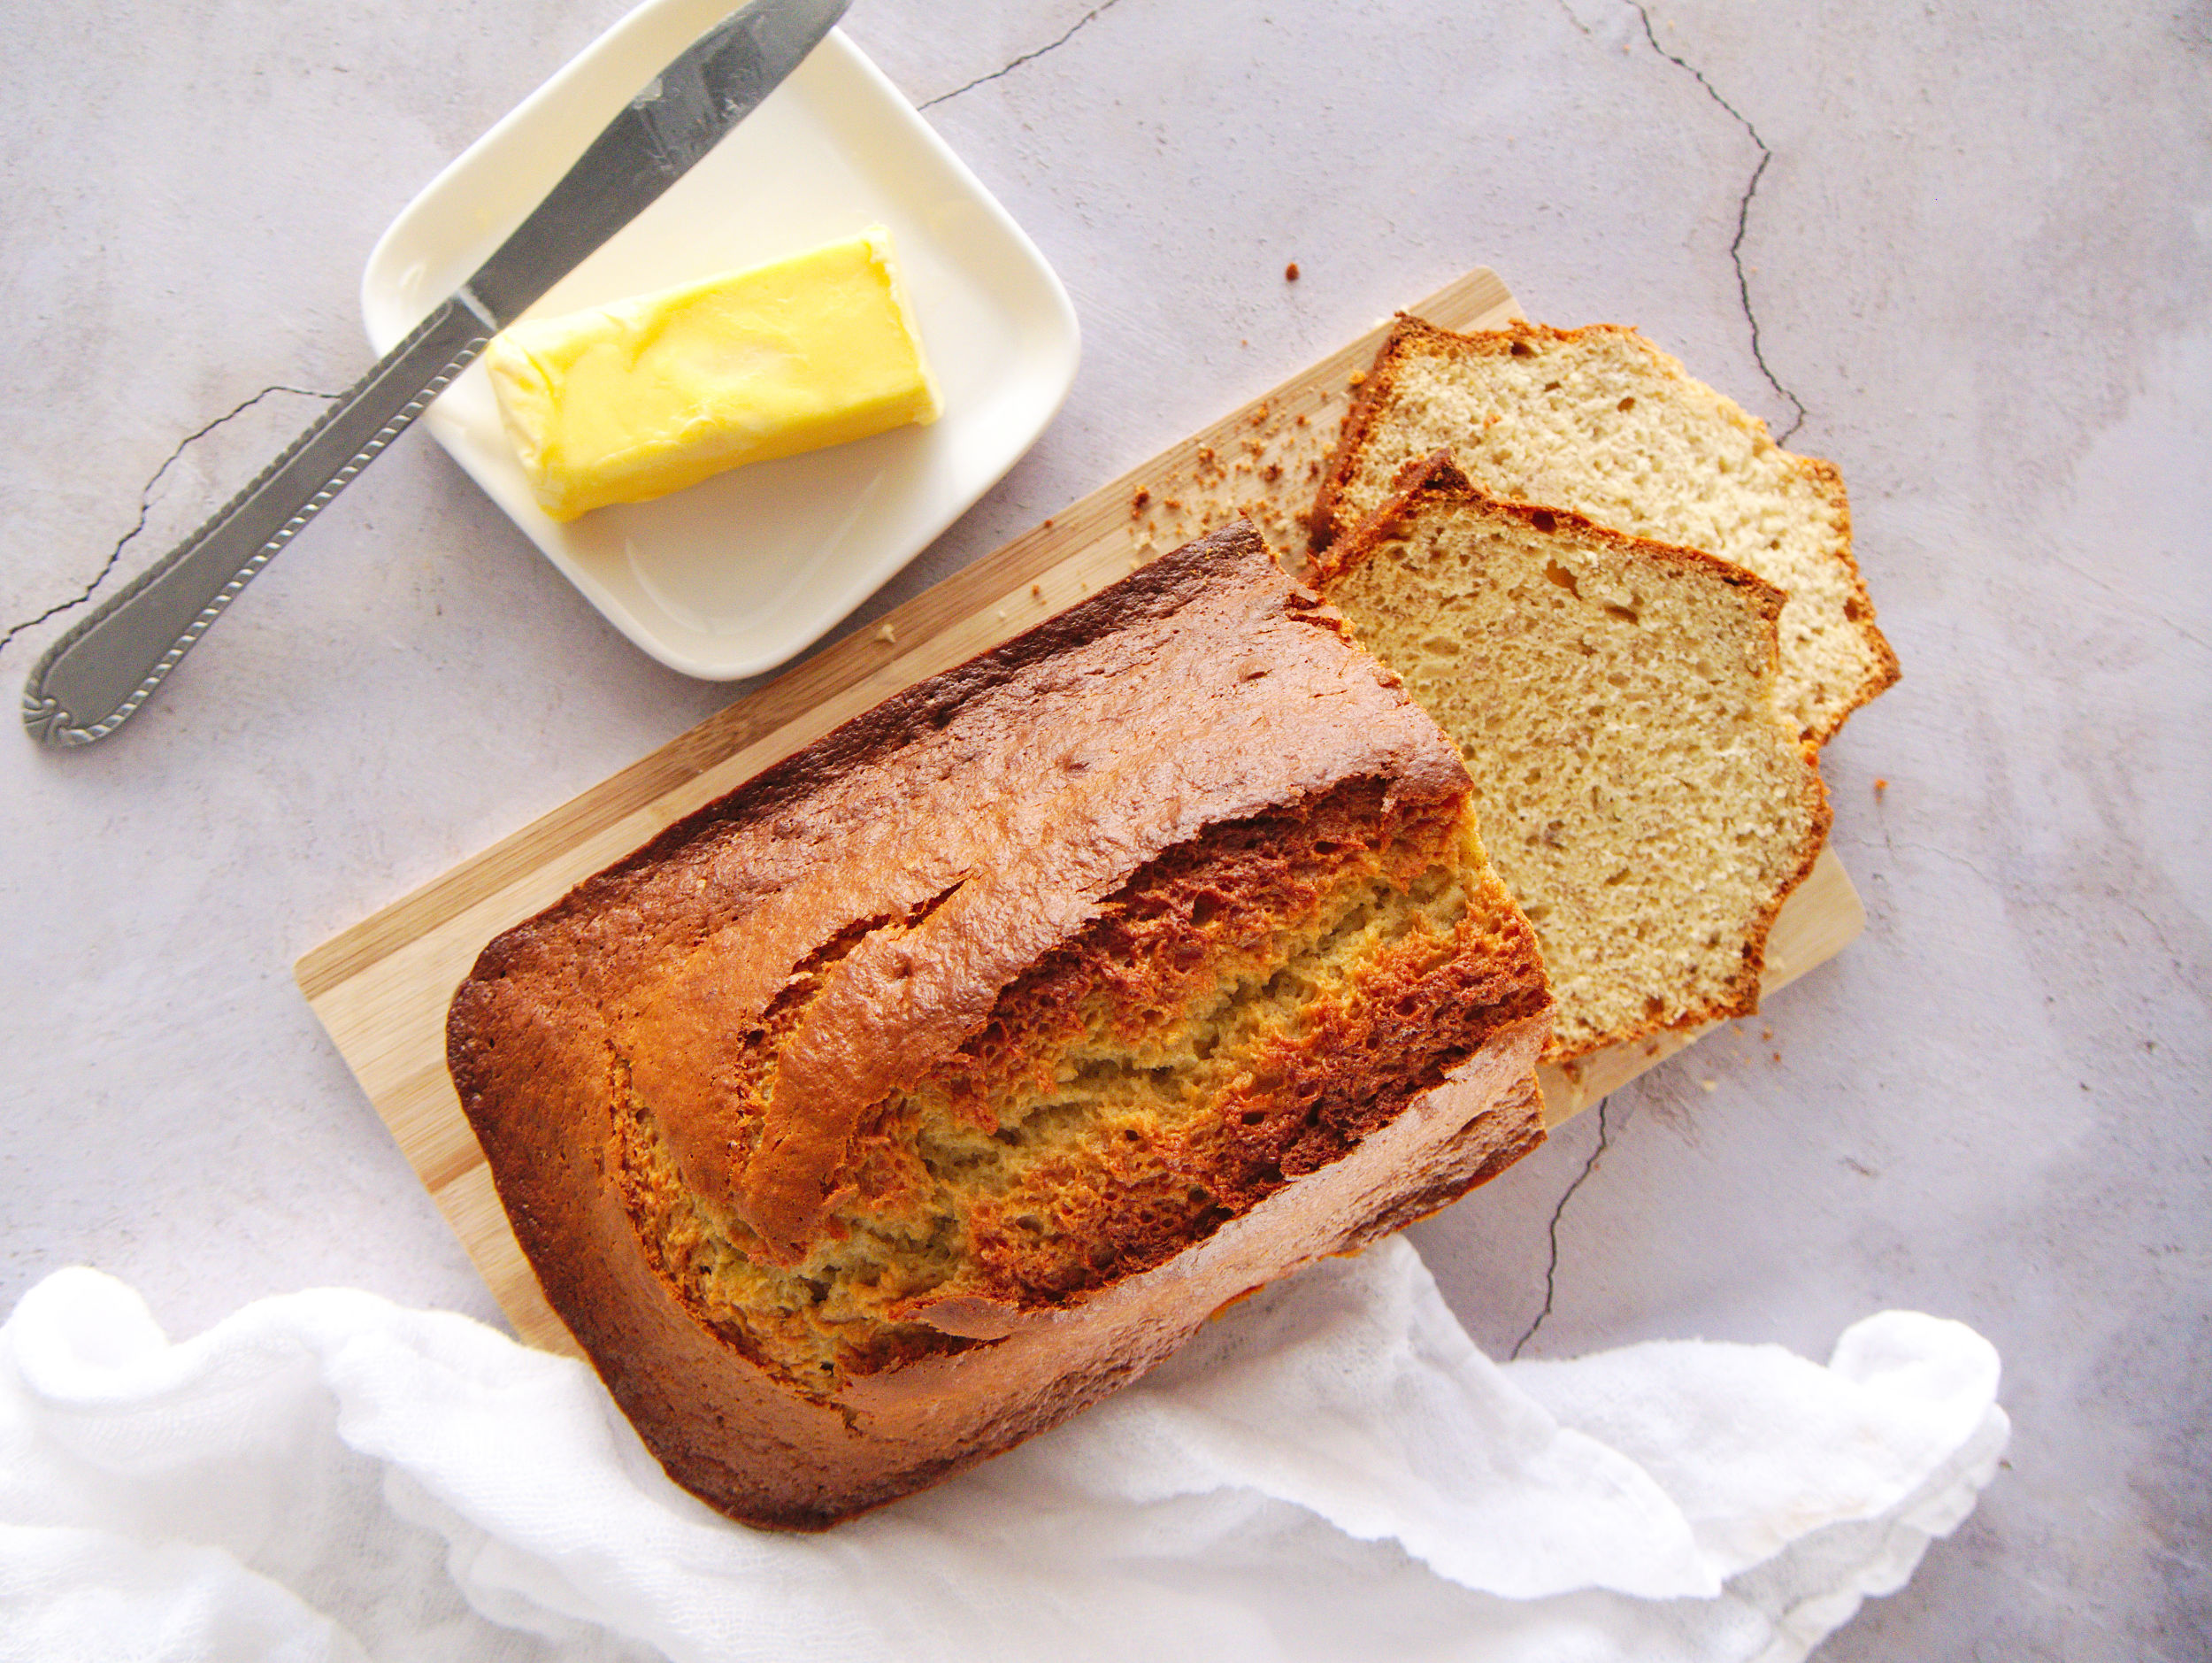 an image of a loaf of banana bread, from above, with a couple slices sliced off, and a side of butter and a knife beside the loaf